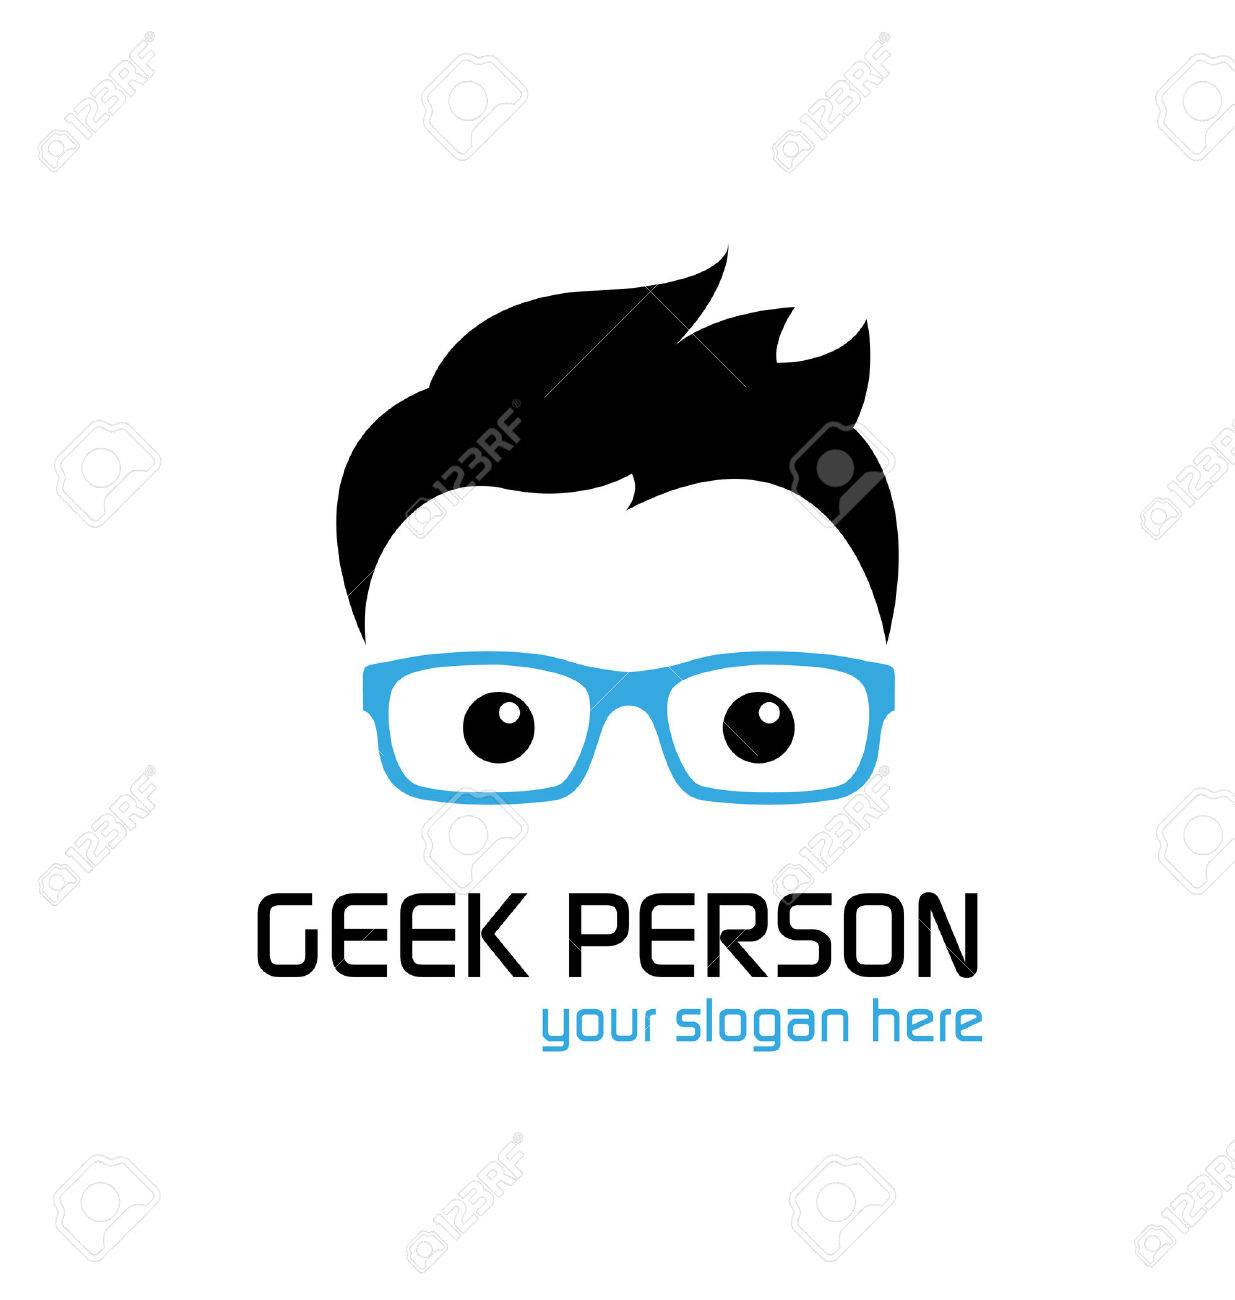 Geek Person Logo Template Royalty Free Cliparts Vectors And Stock